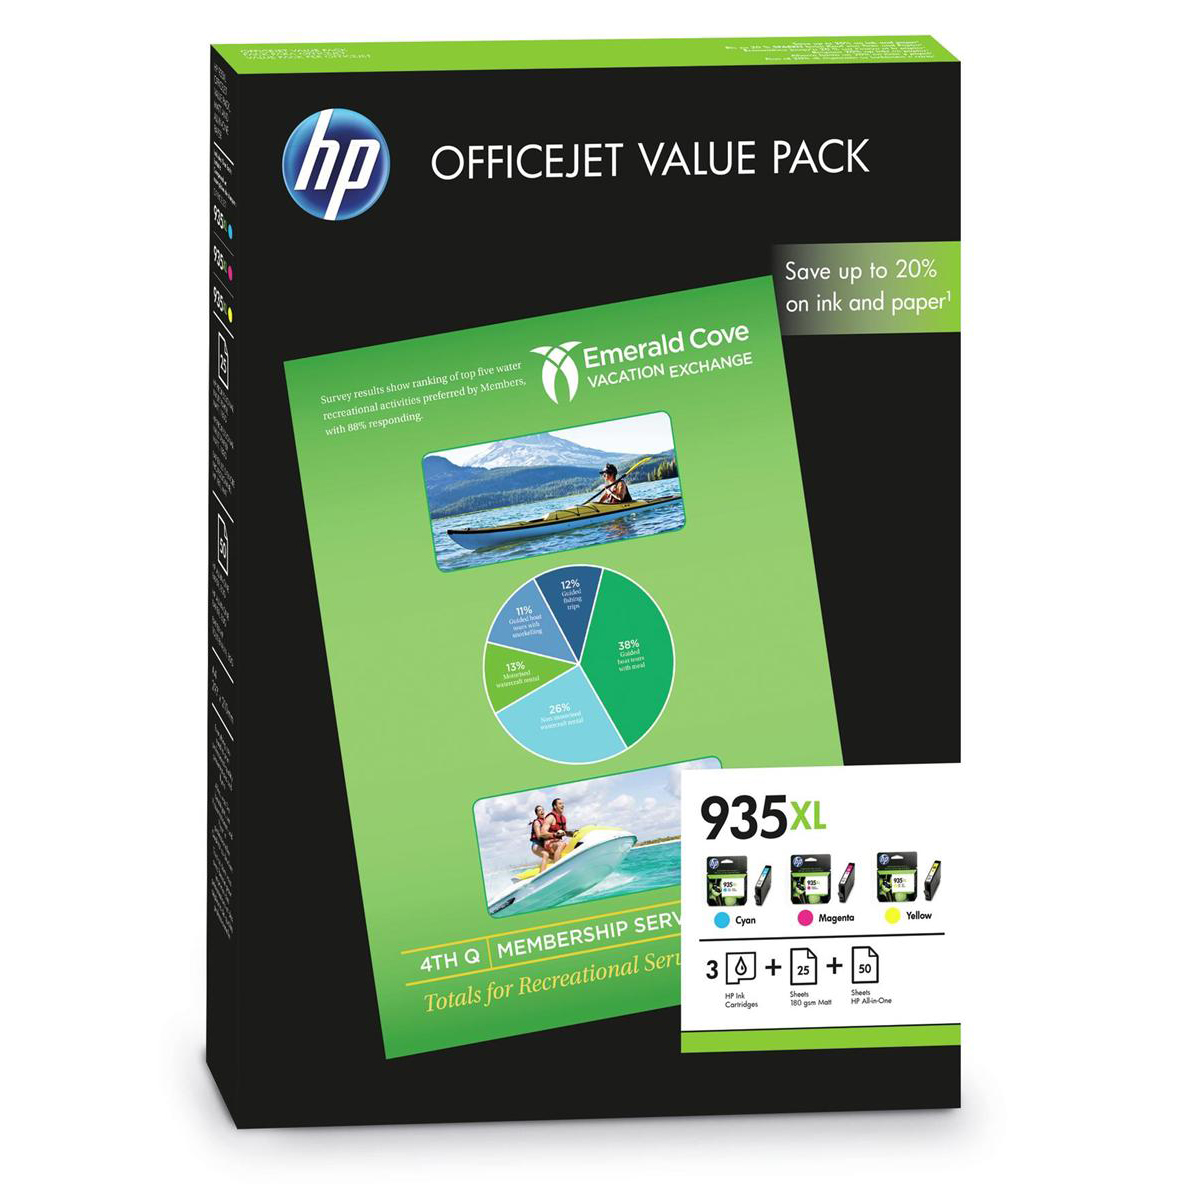 Hewlett Packard [HP] No. 935XL Ink Cartridge Officejet Value Pack C/M/Y Plus A4 Paper Ref F6U78AE